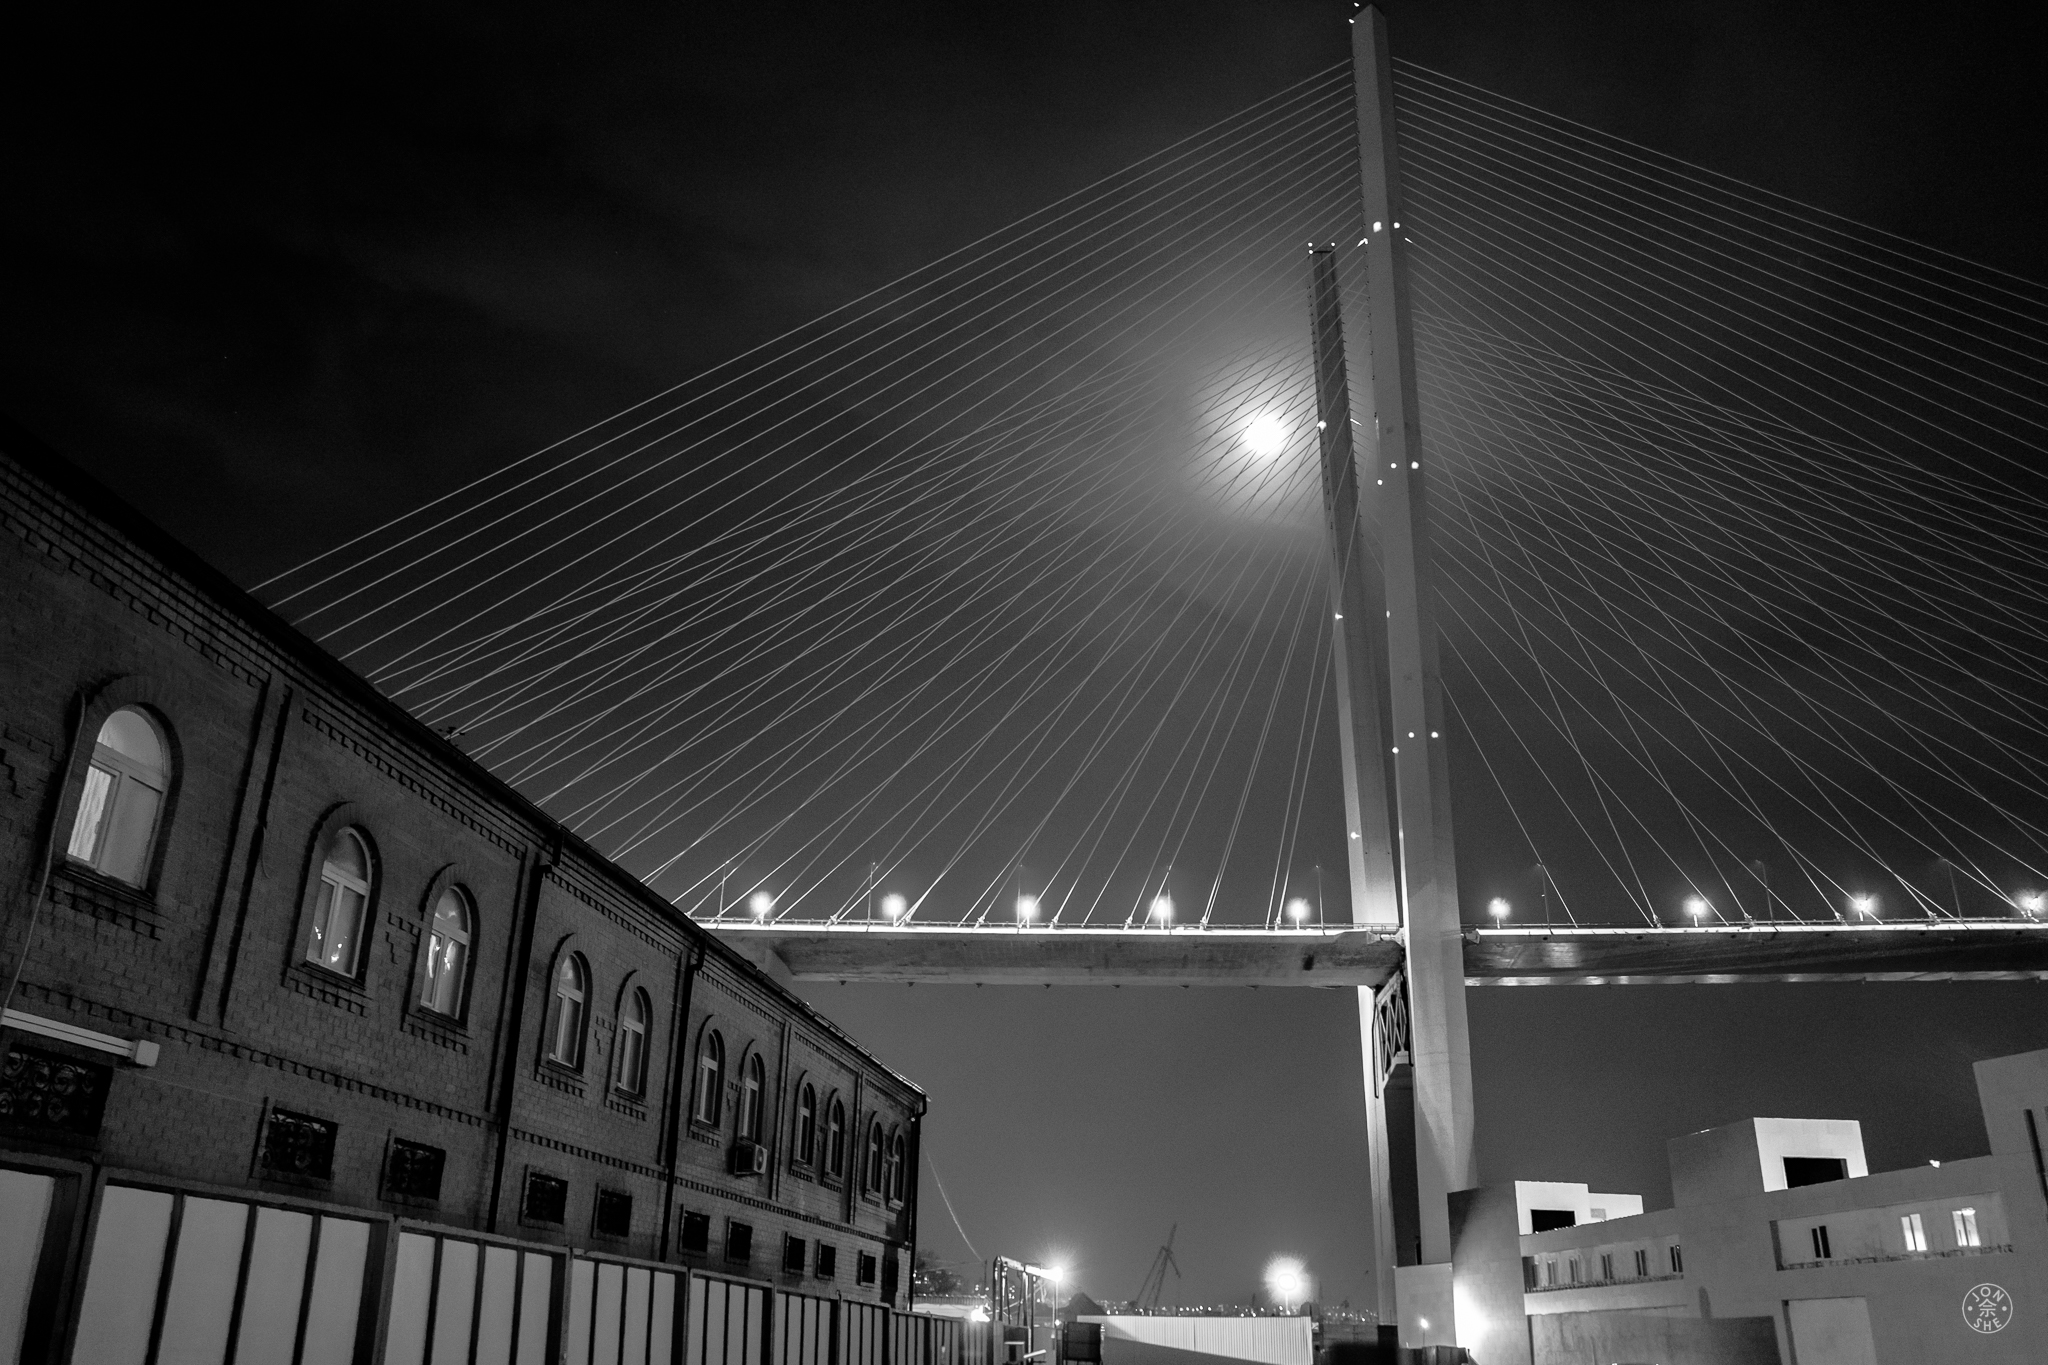 """""""Zolotoy Bridge at Night"""".  Like a geometric Colossus the """"Golden Horn"""" bridge dominates the winter skyline from almost everywhere in the city, linking the old to the new. Vladivostok, Primorsky Krai, Far East Russia. January 2017. © Jon She. Leica Q (Typ 116), Leica Summilux 28mm f/1.7 ASPH (FLE)."""